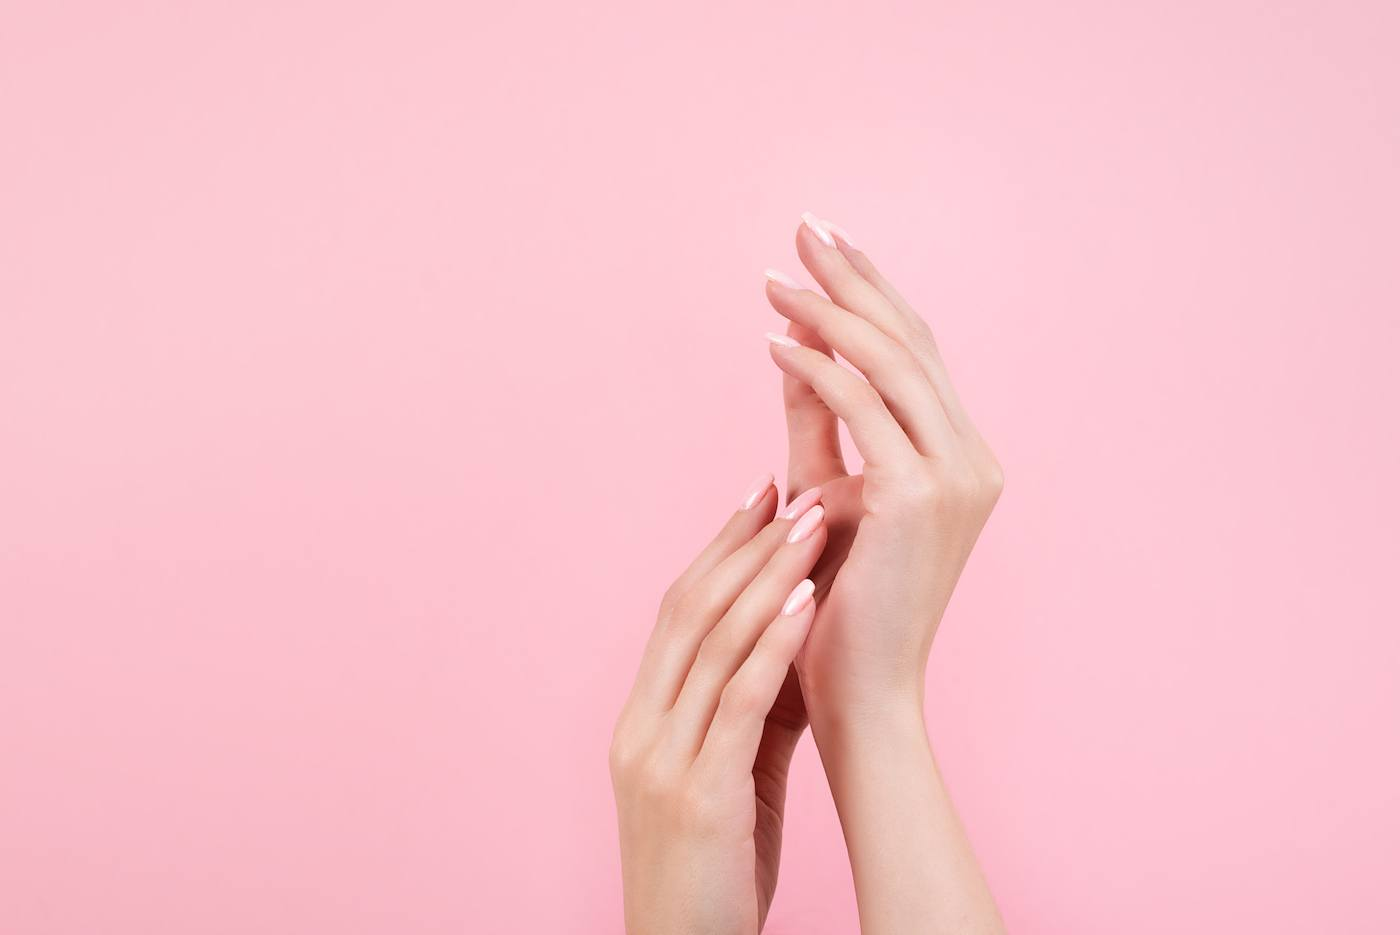 Thumbnail for This Manicure Treatment Is the Fastest Way to Heal Dry, Cracked Hands